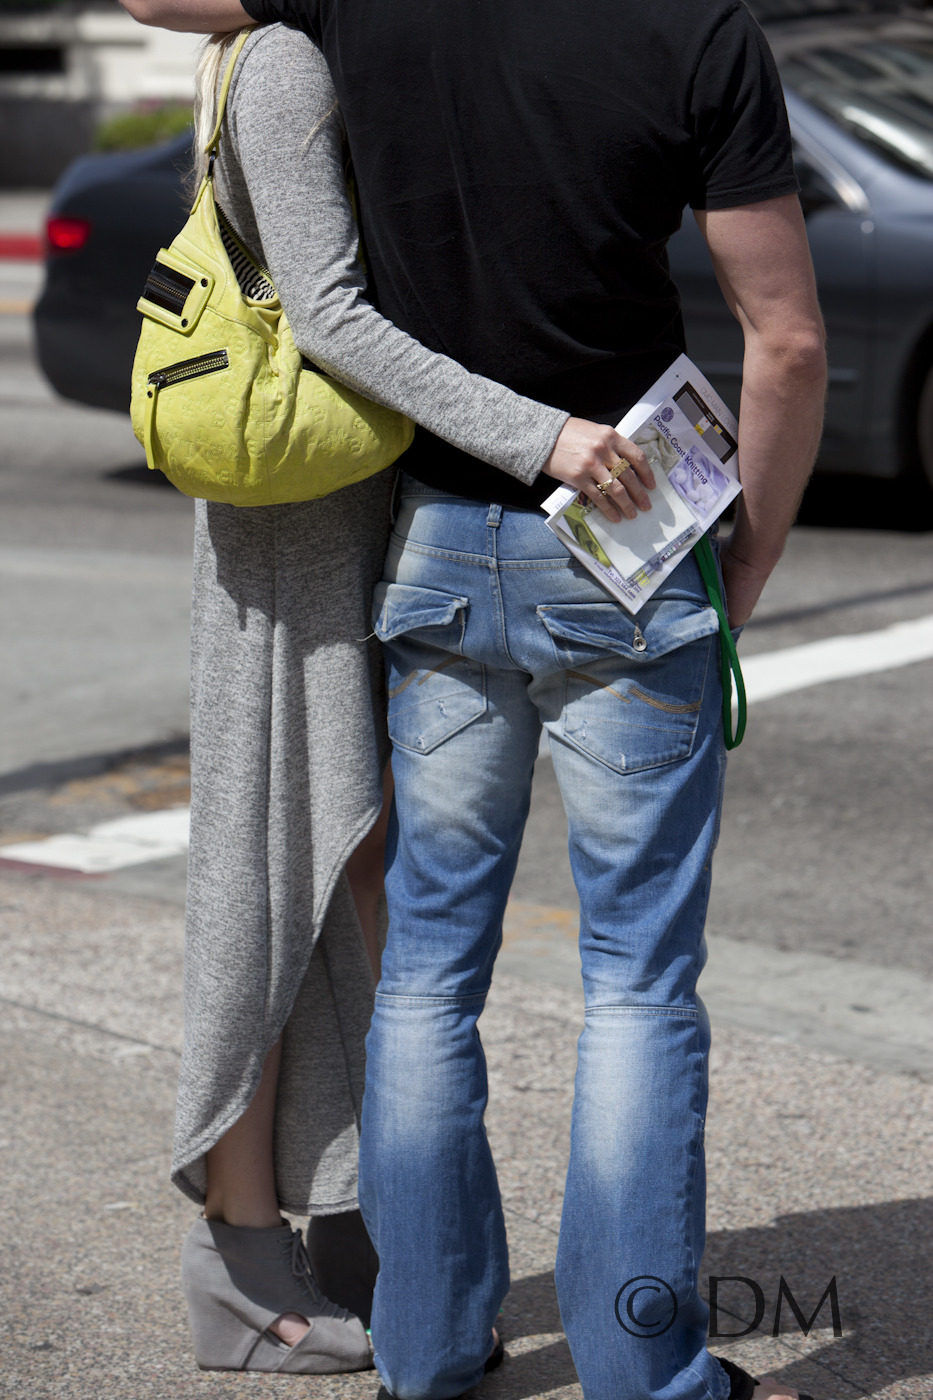 Hugging her man, and her L.A.M.B. neon bag.